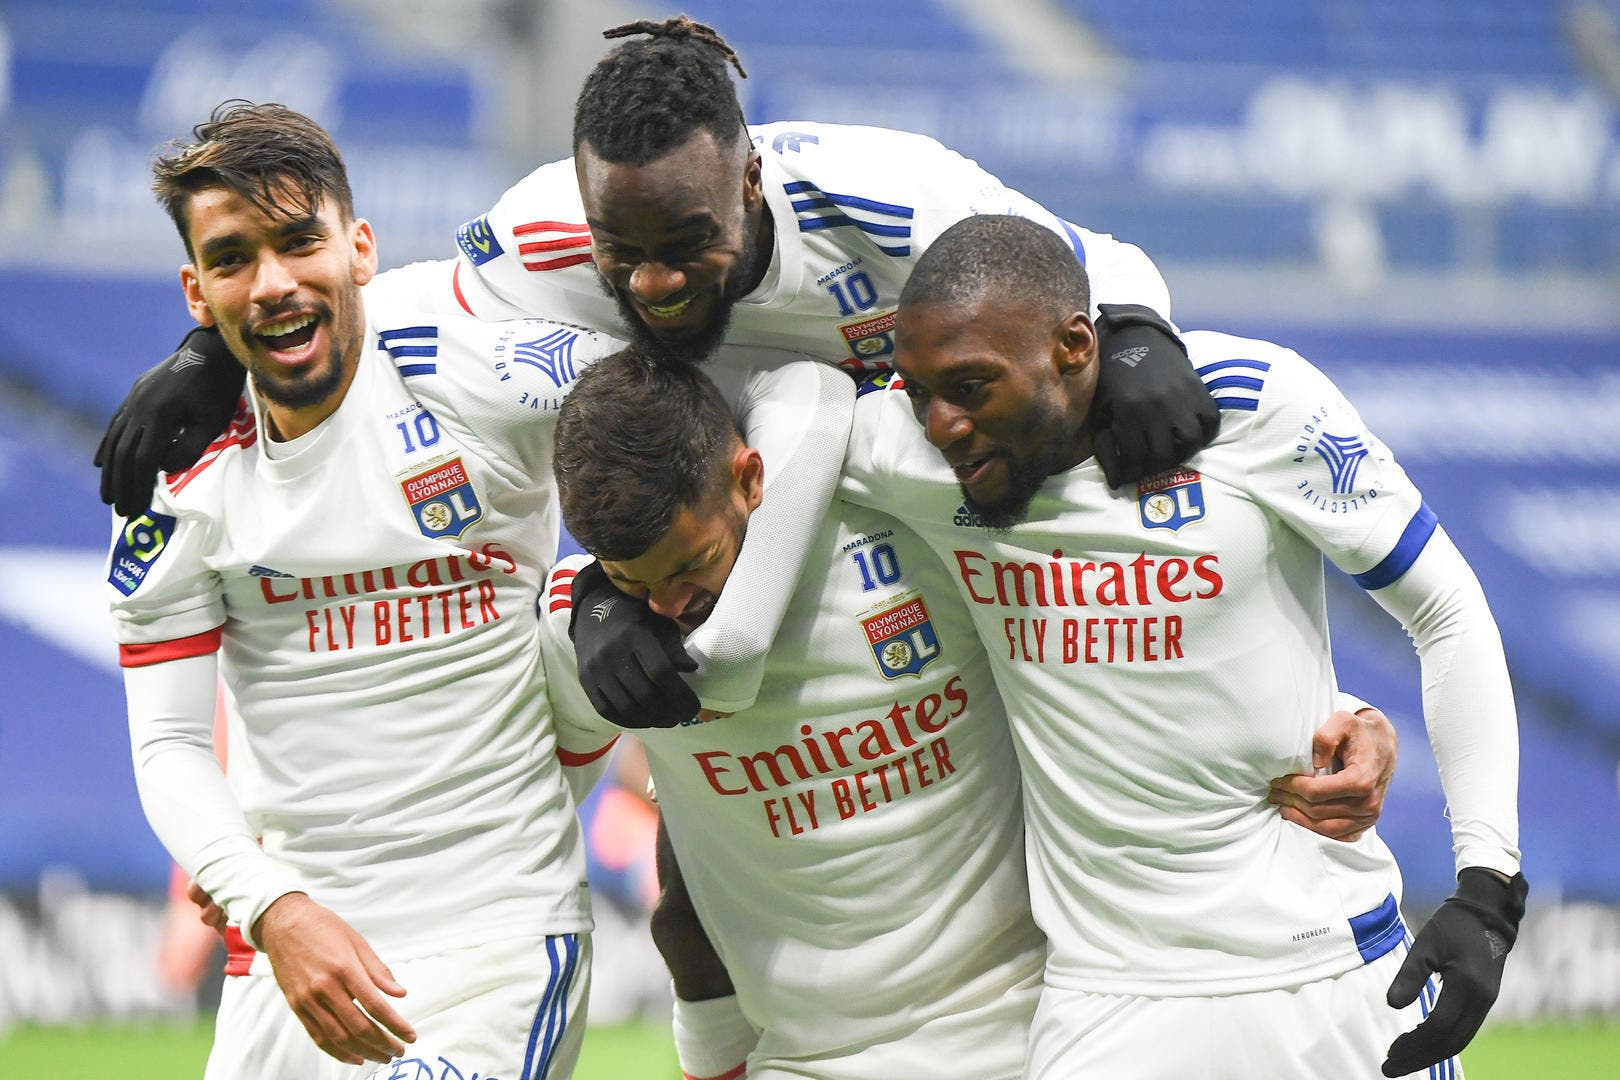 Foot Ol Ol The Title And Nothing Else The Goal Of Lyon Is Clear Olympique Lyonnais France24 News English